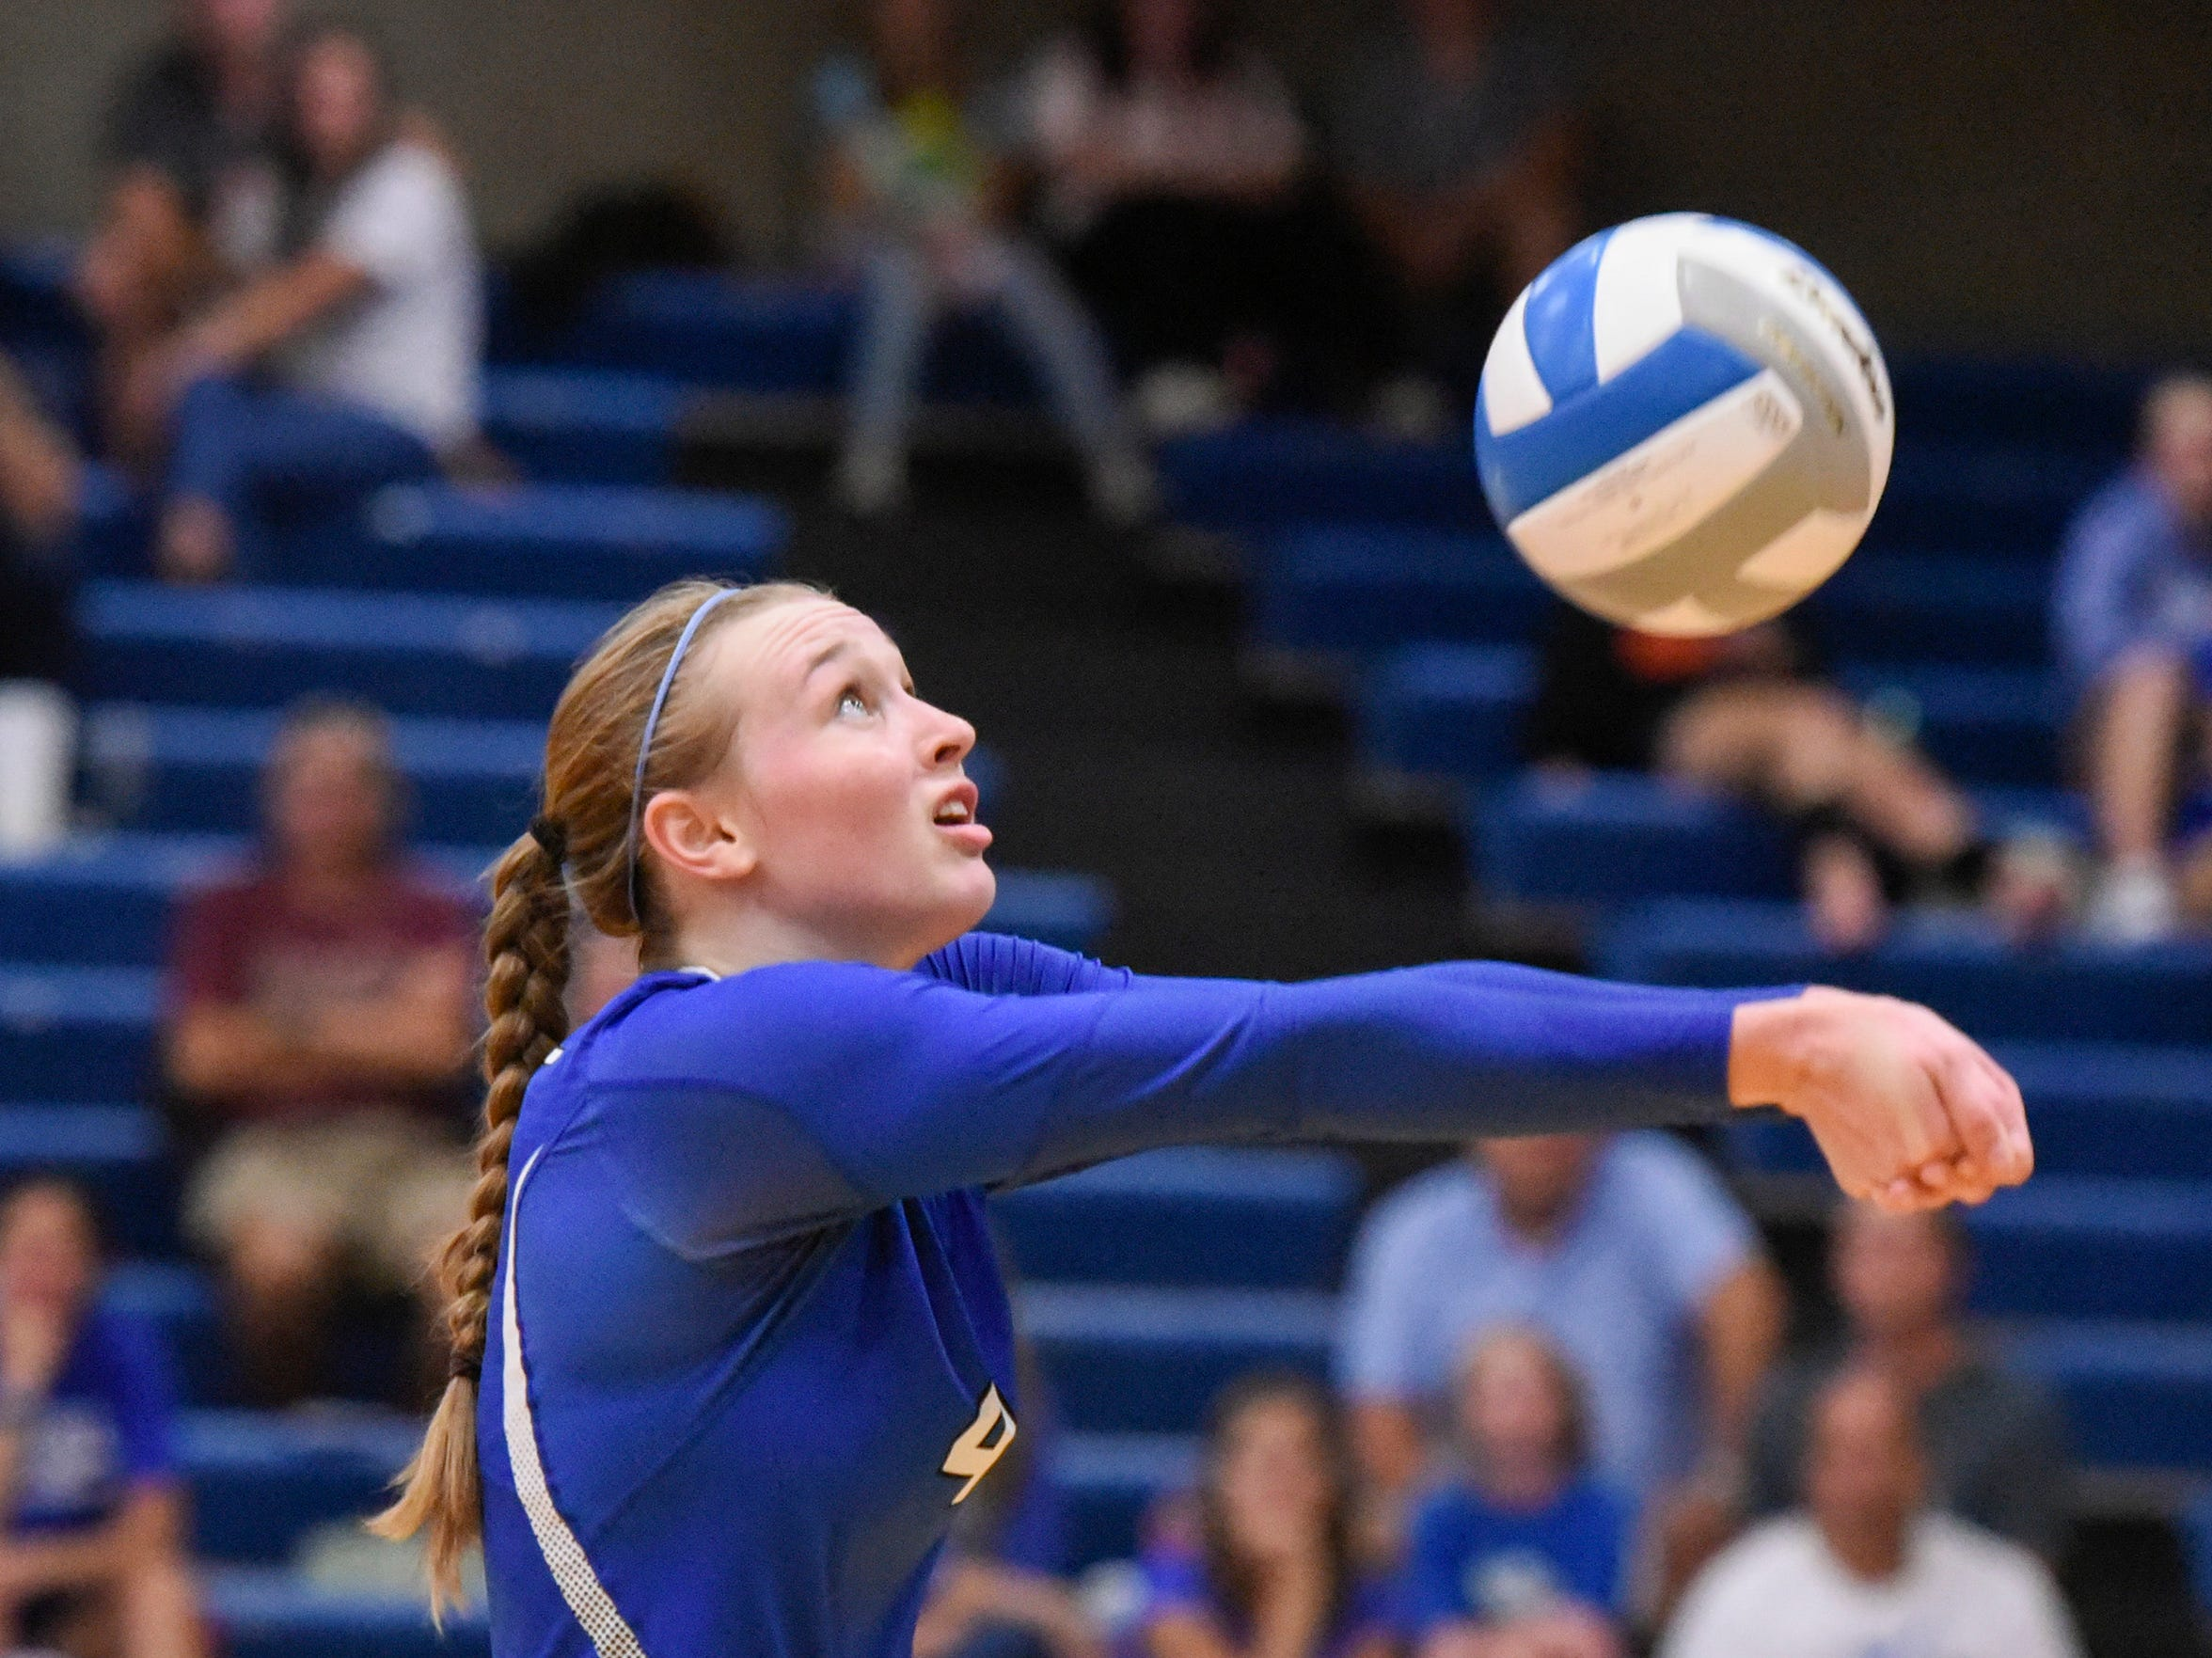 Sartell's Morgan Vosberg bumps the ball toward the net against Tech during the third game Tuesday, Sept. 11, in Sartell.